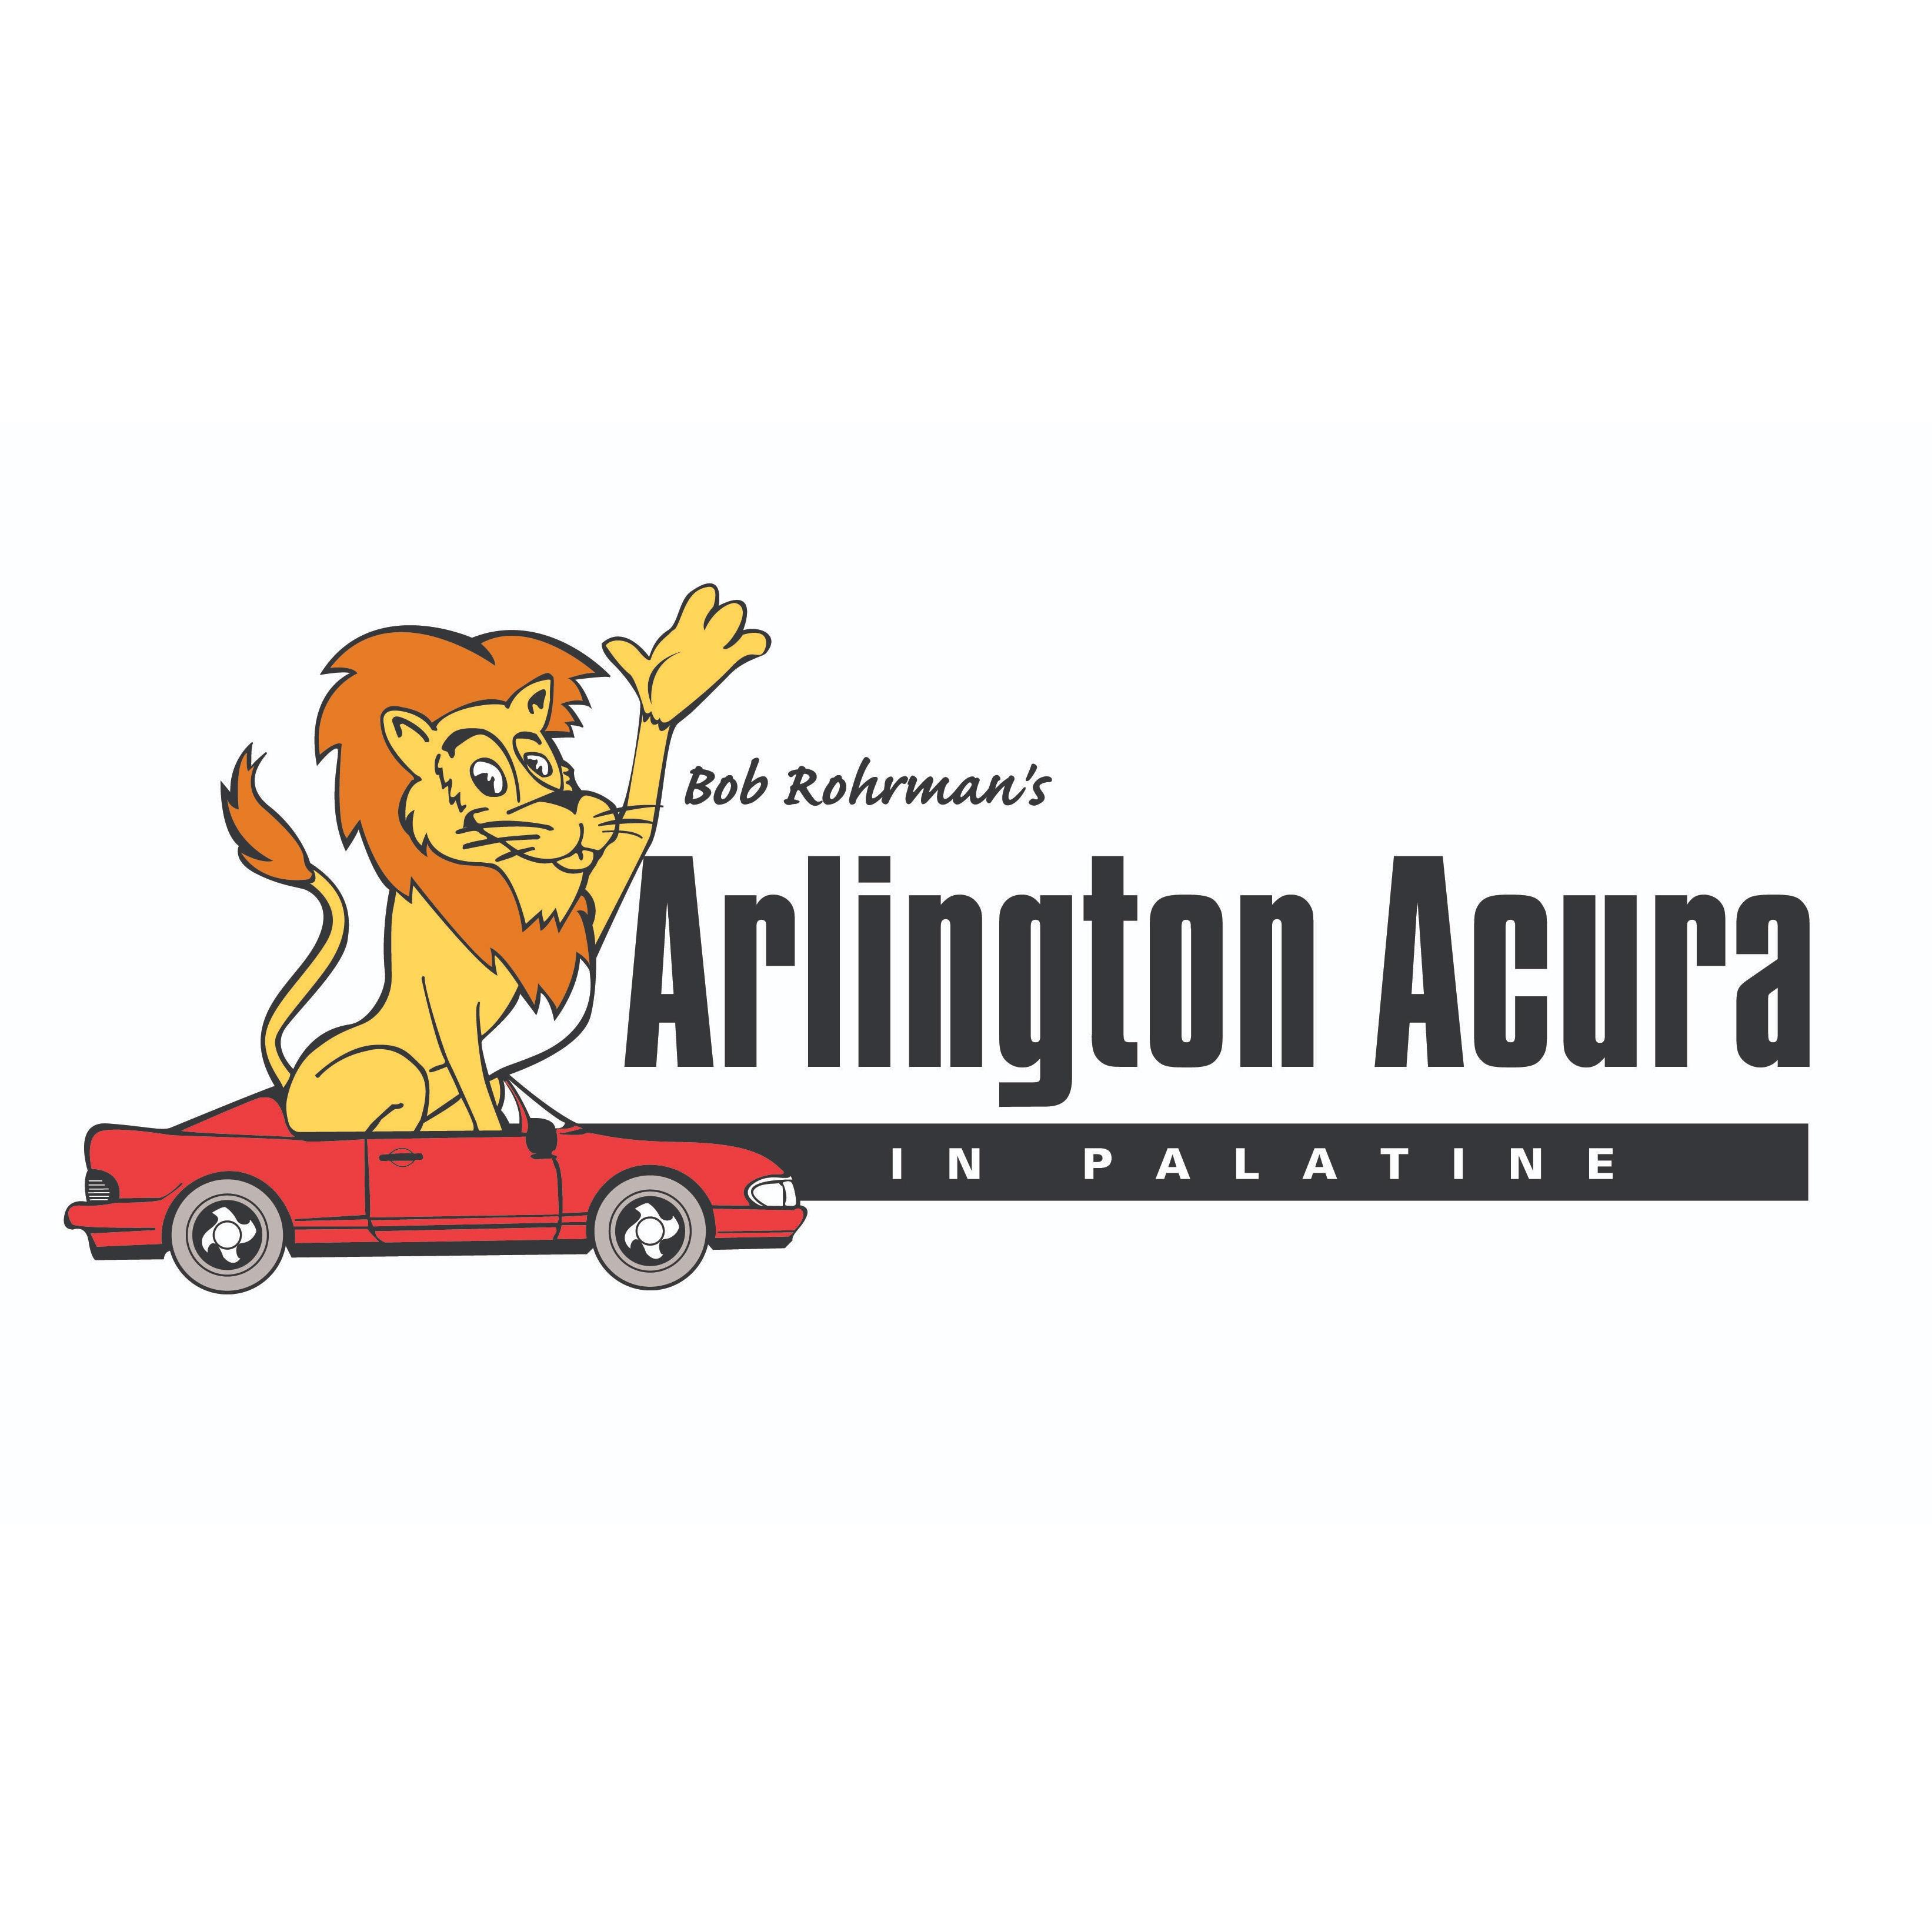 Arlington Acura in Palatine